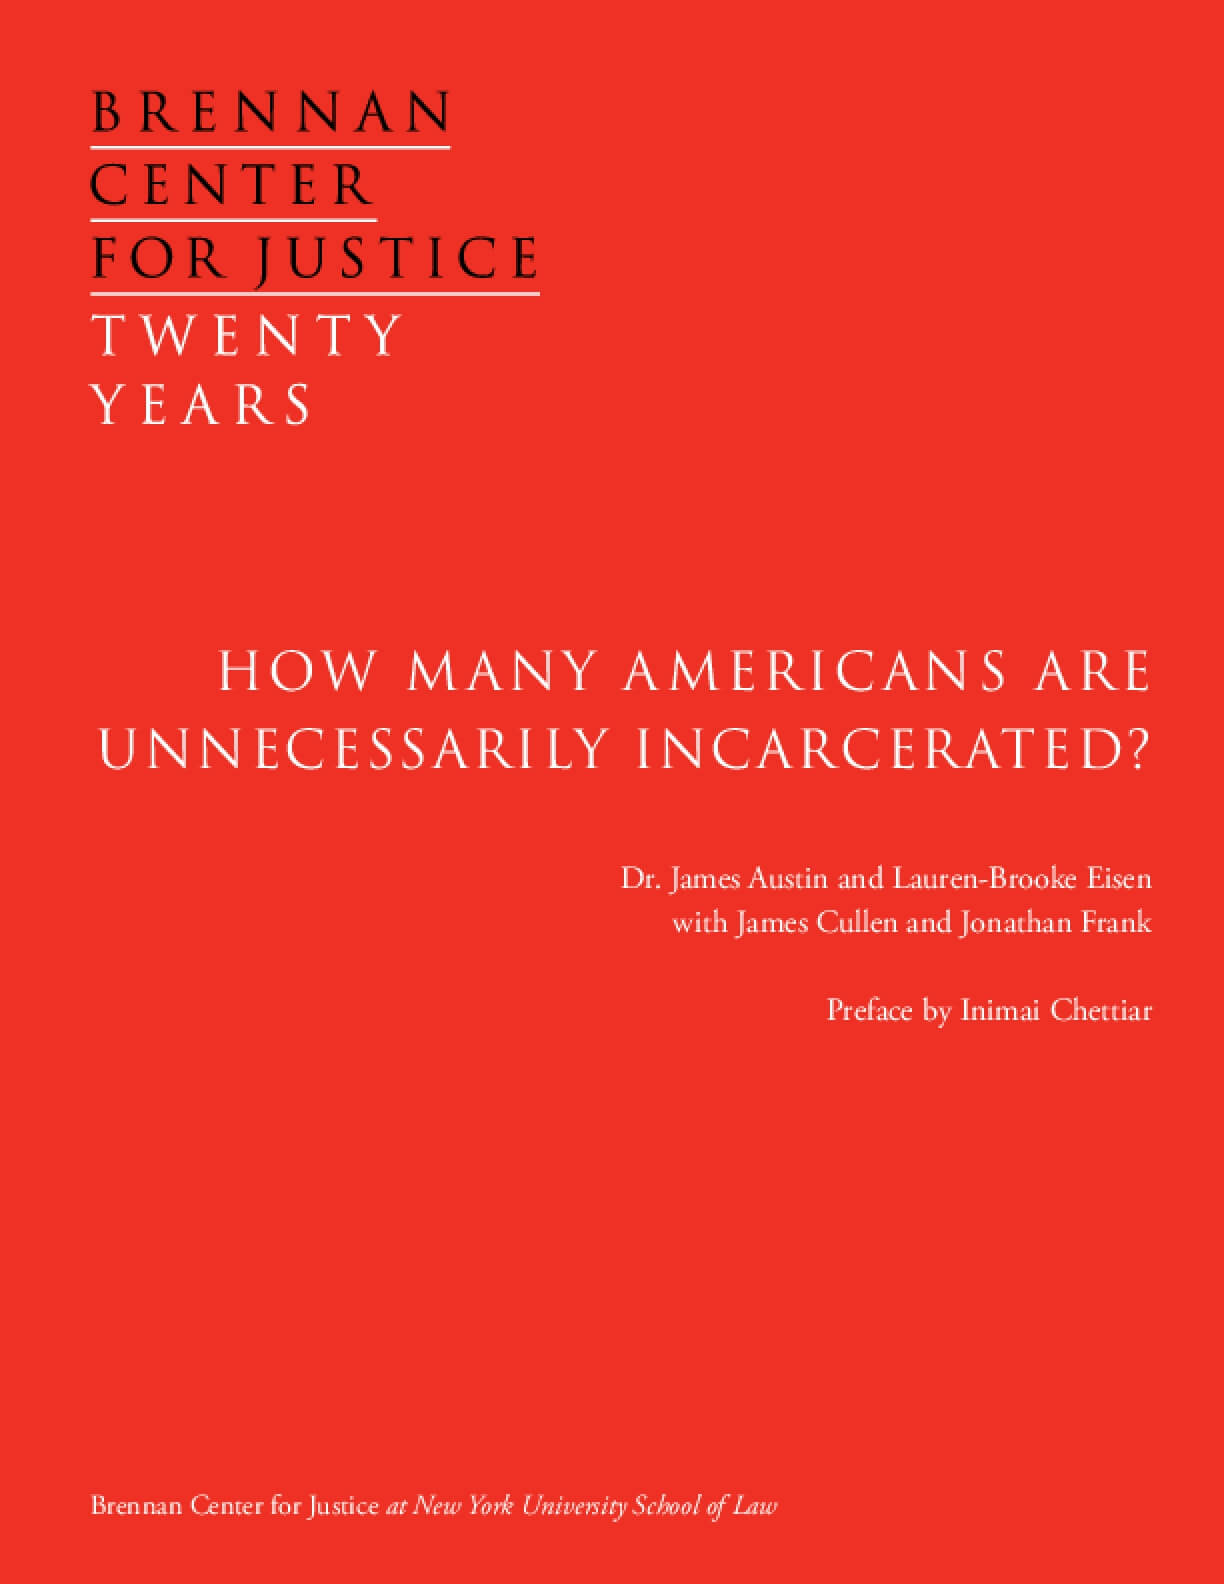 How Many Americans Are Unnecessarily Incarcerated?